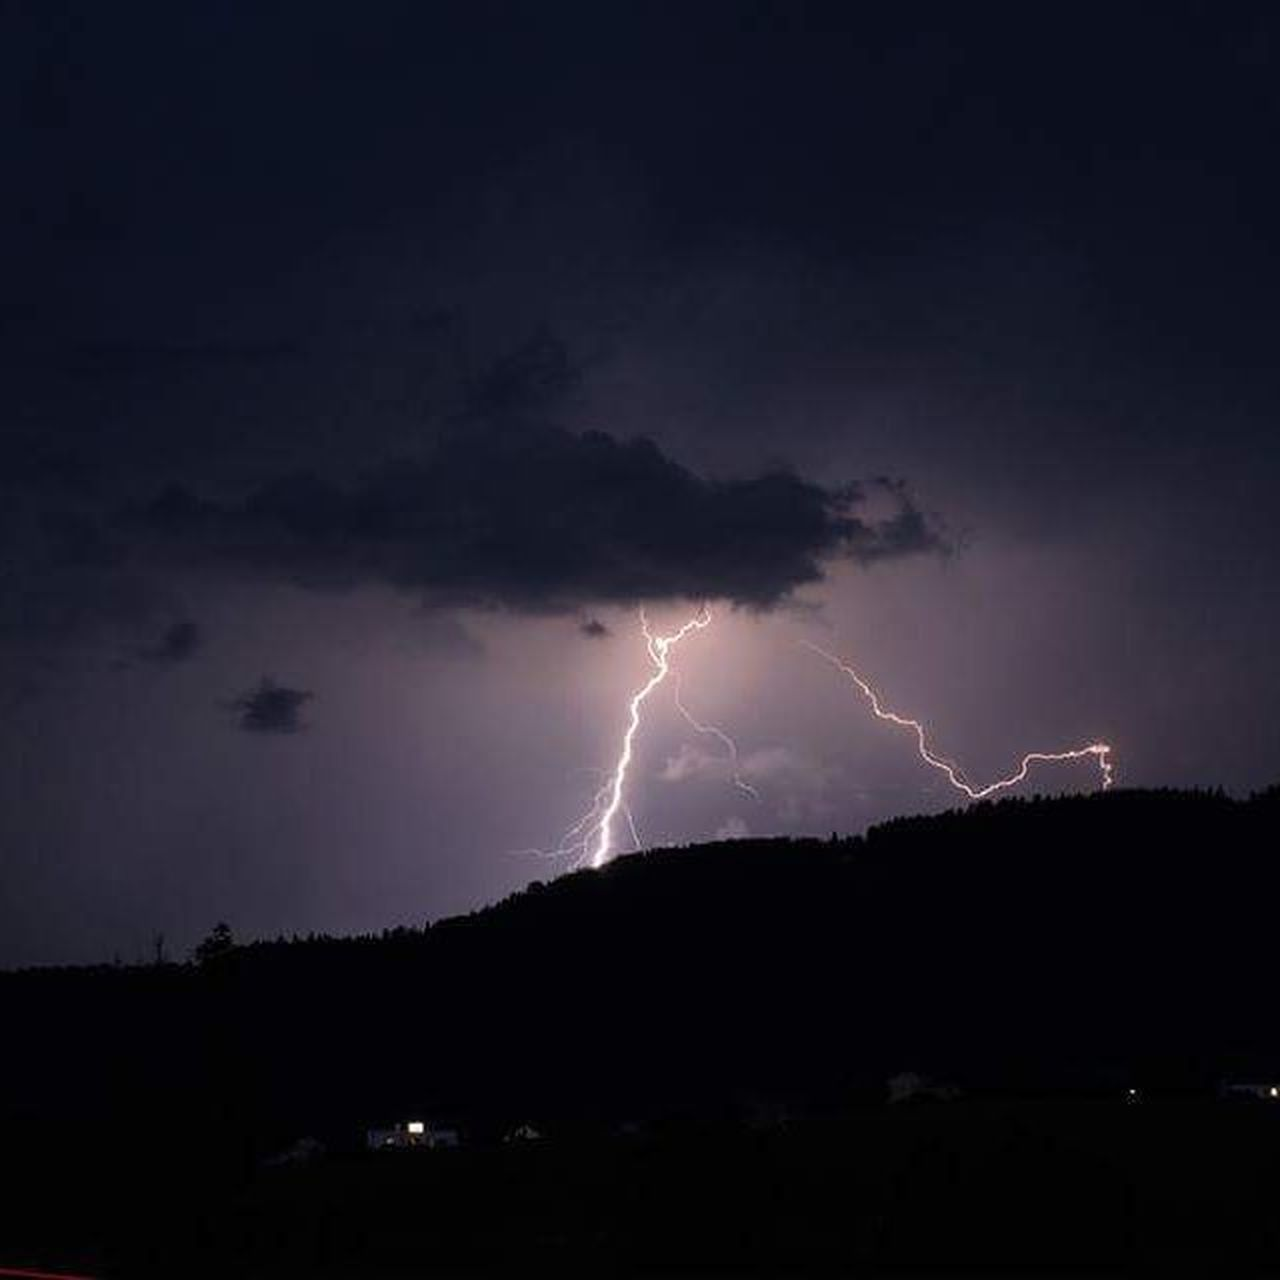 lightning, thunderstorm, power in nature, forked lightning, storm, night, danger, dramatic sky, weather, storm cloud, illuminated, nature, sky, scenics, silhouette, vitality, beauty in nature, no people, electricity, outdoors, tree